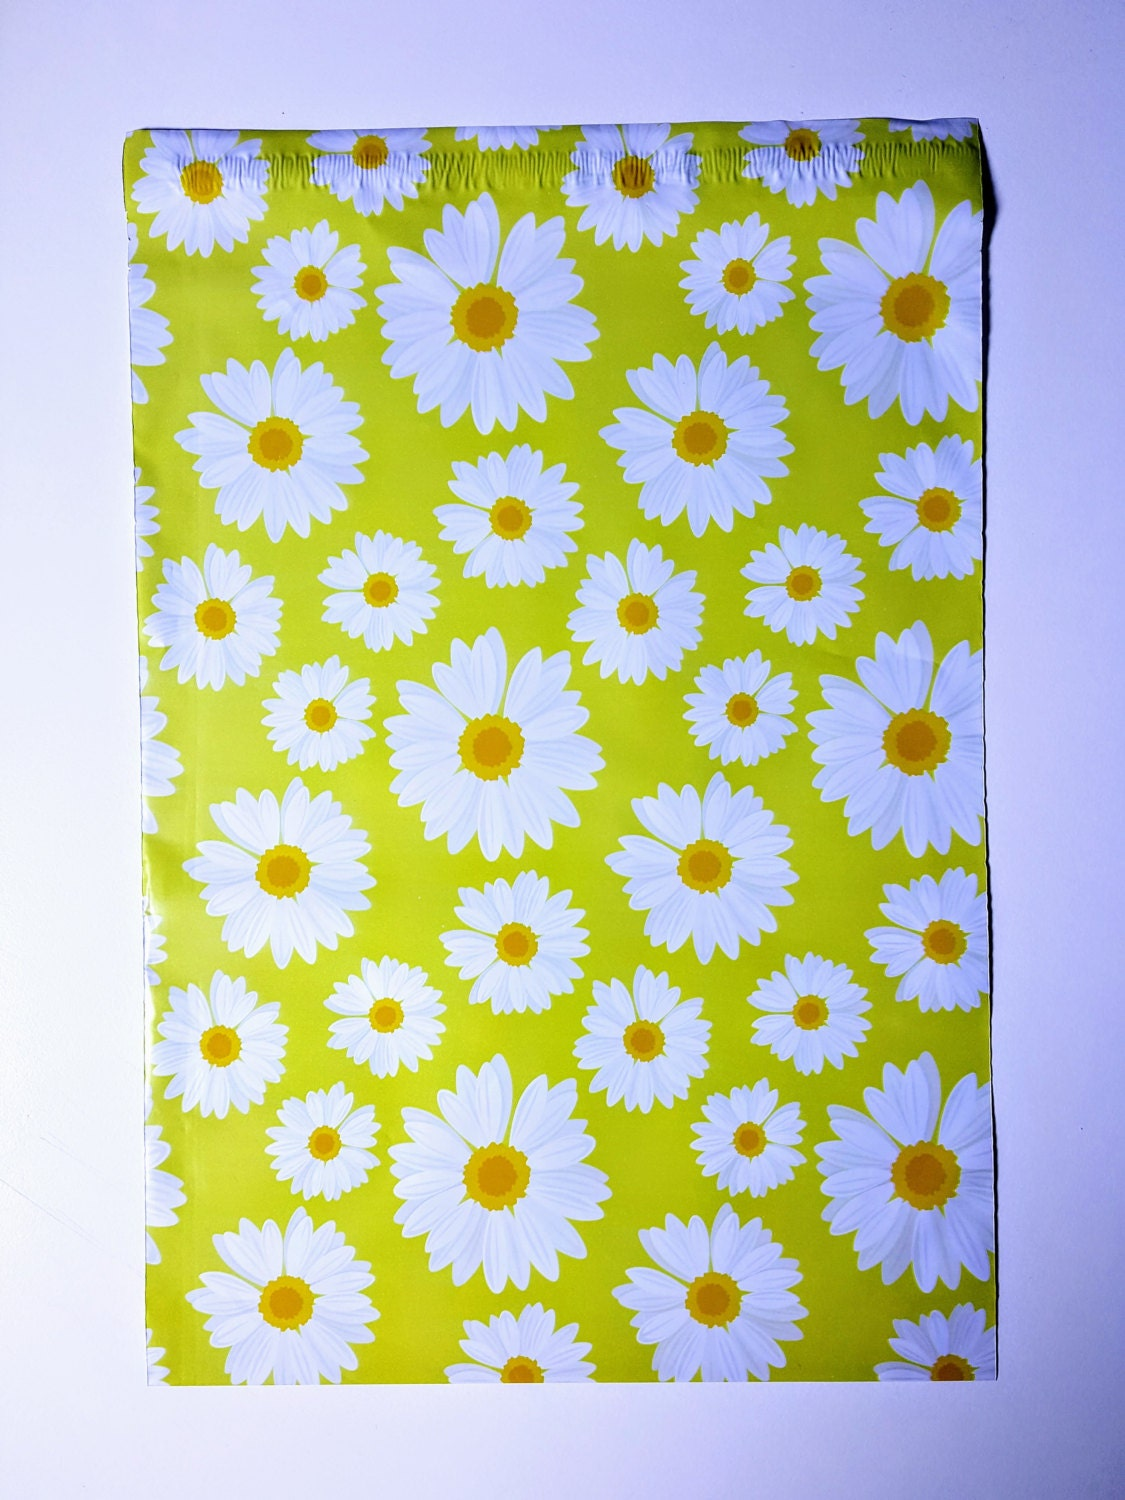 200 10x13 inch yellow daisy flower design color poly mailer etsy zoom izmirmasajfo